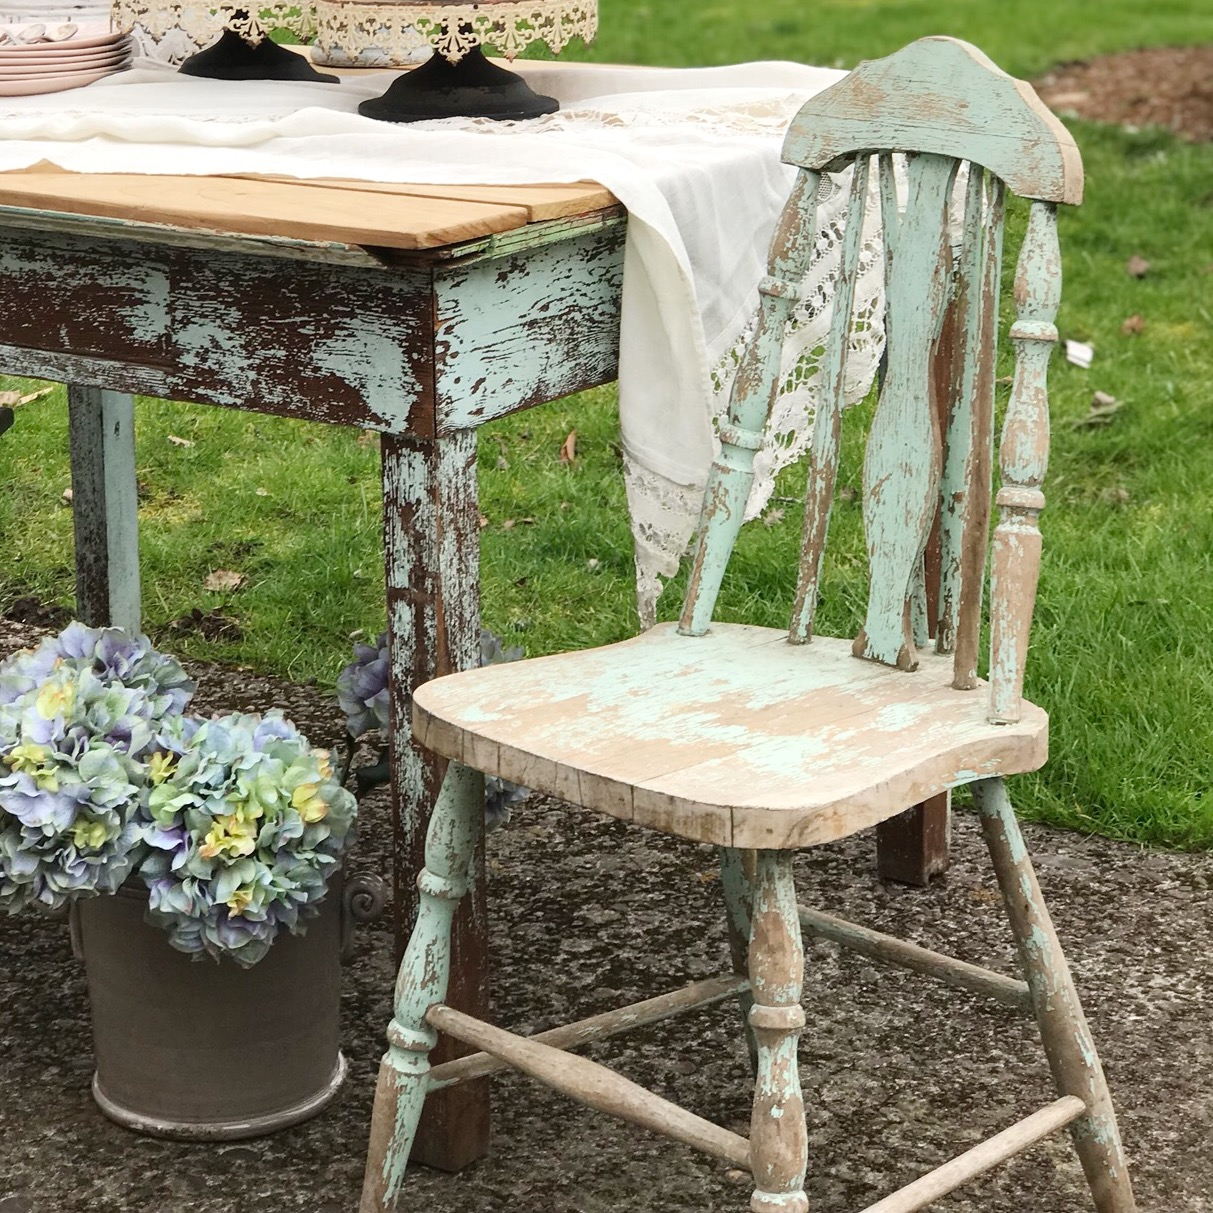 Our Farmhouse Decor from HallstromHome blue chippy chair next to antique blue chippy wood table with pot on ground with hyrdrangea bouquet